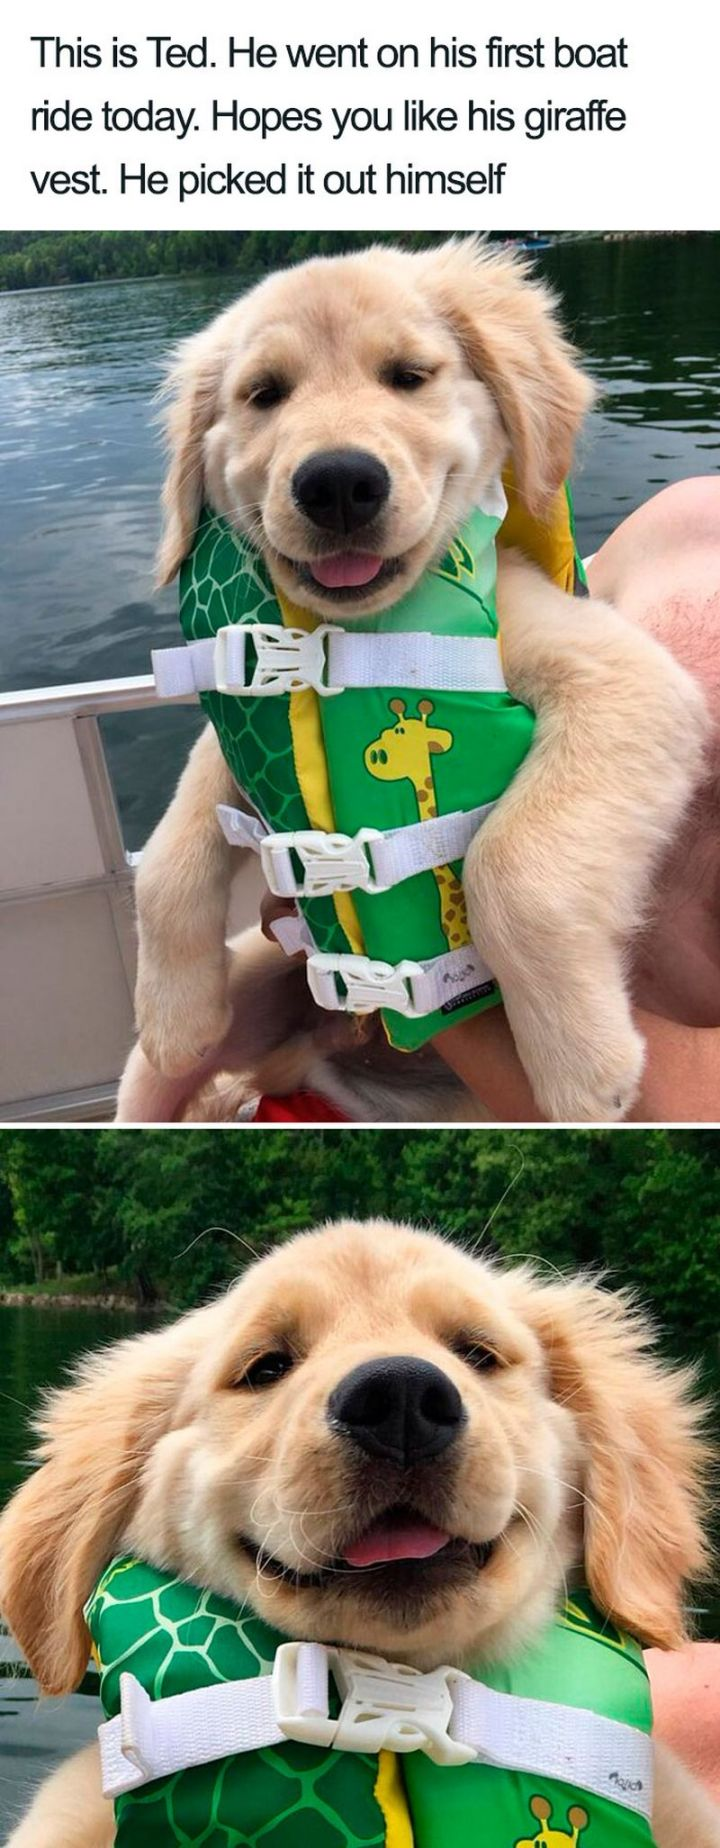 "55 Cute Dog Posts - ""This is Ted. He went on his first boat ride today. Hopes you like his giraffe vest. He picked it out himself."""